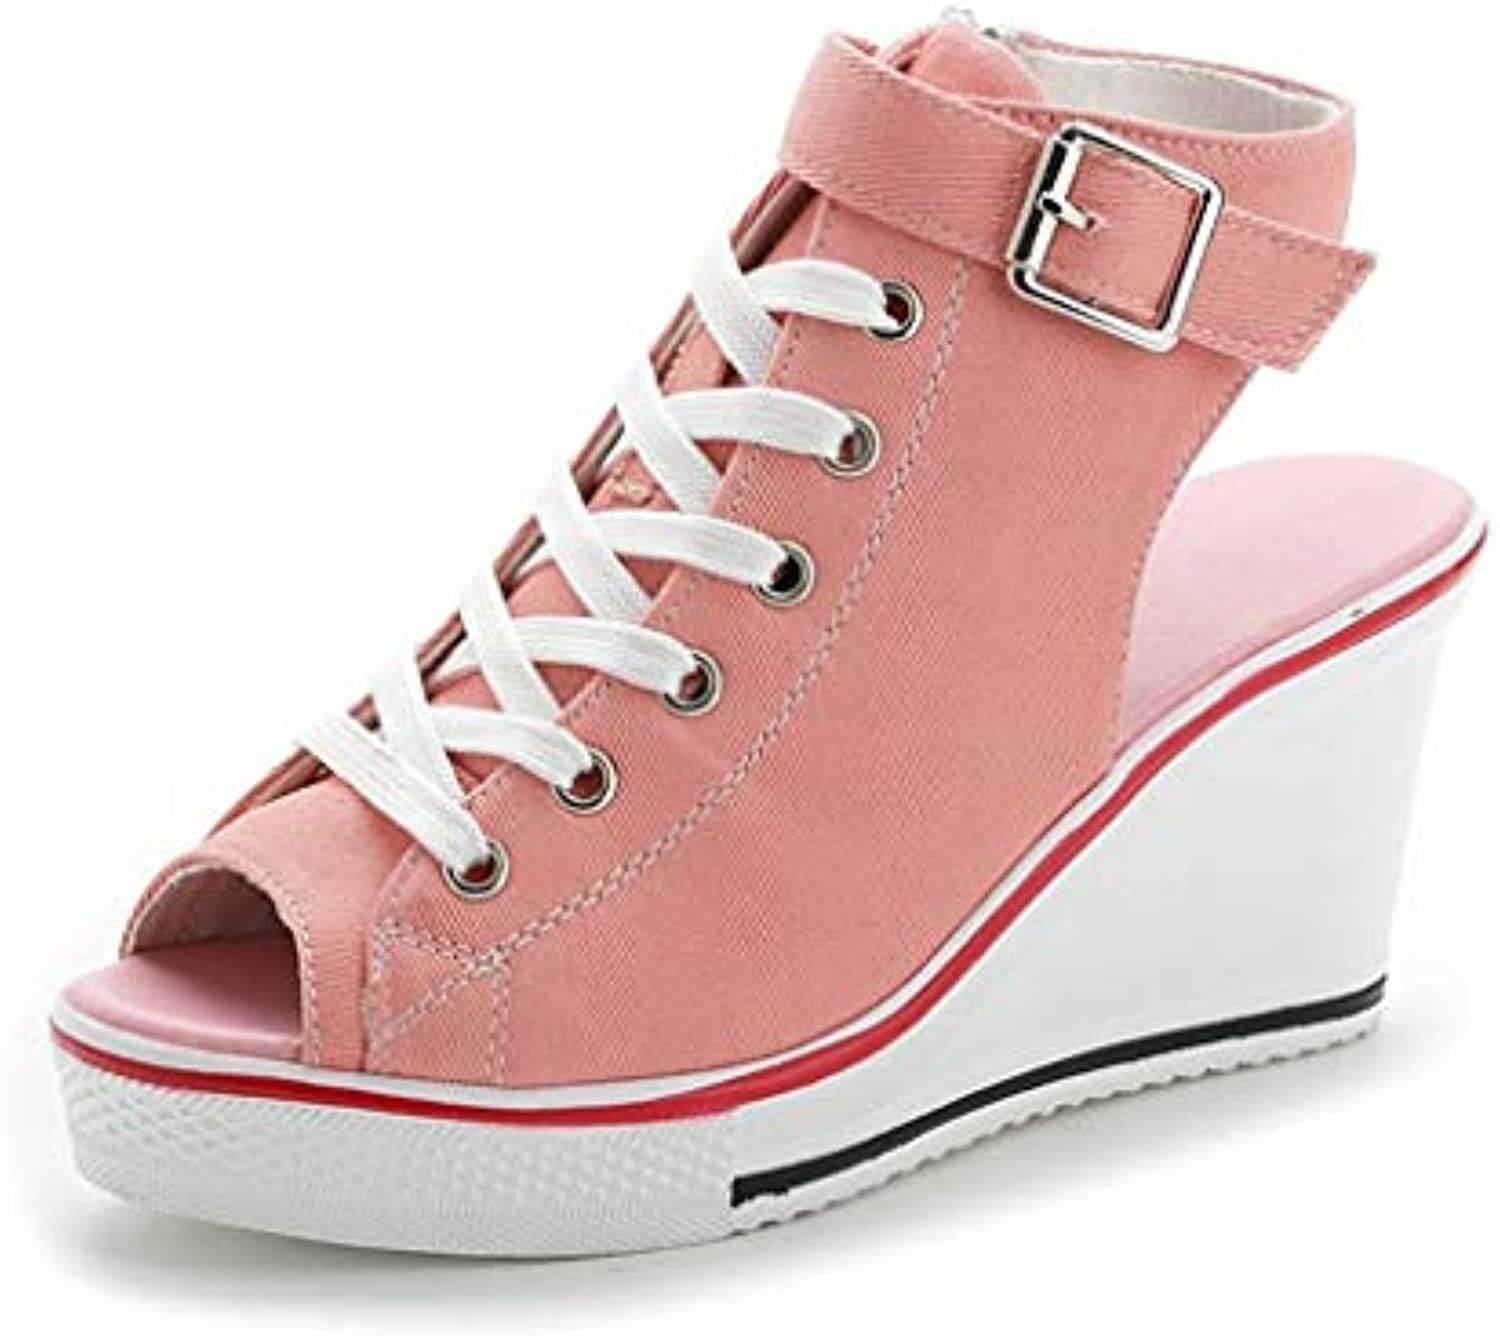 Women Wedges Canvas, Lady Large Size shoes High shoes Adjustable Buckle Peep Toe Creepers High-top Fish Mouth Hollow Sandals